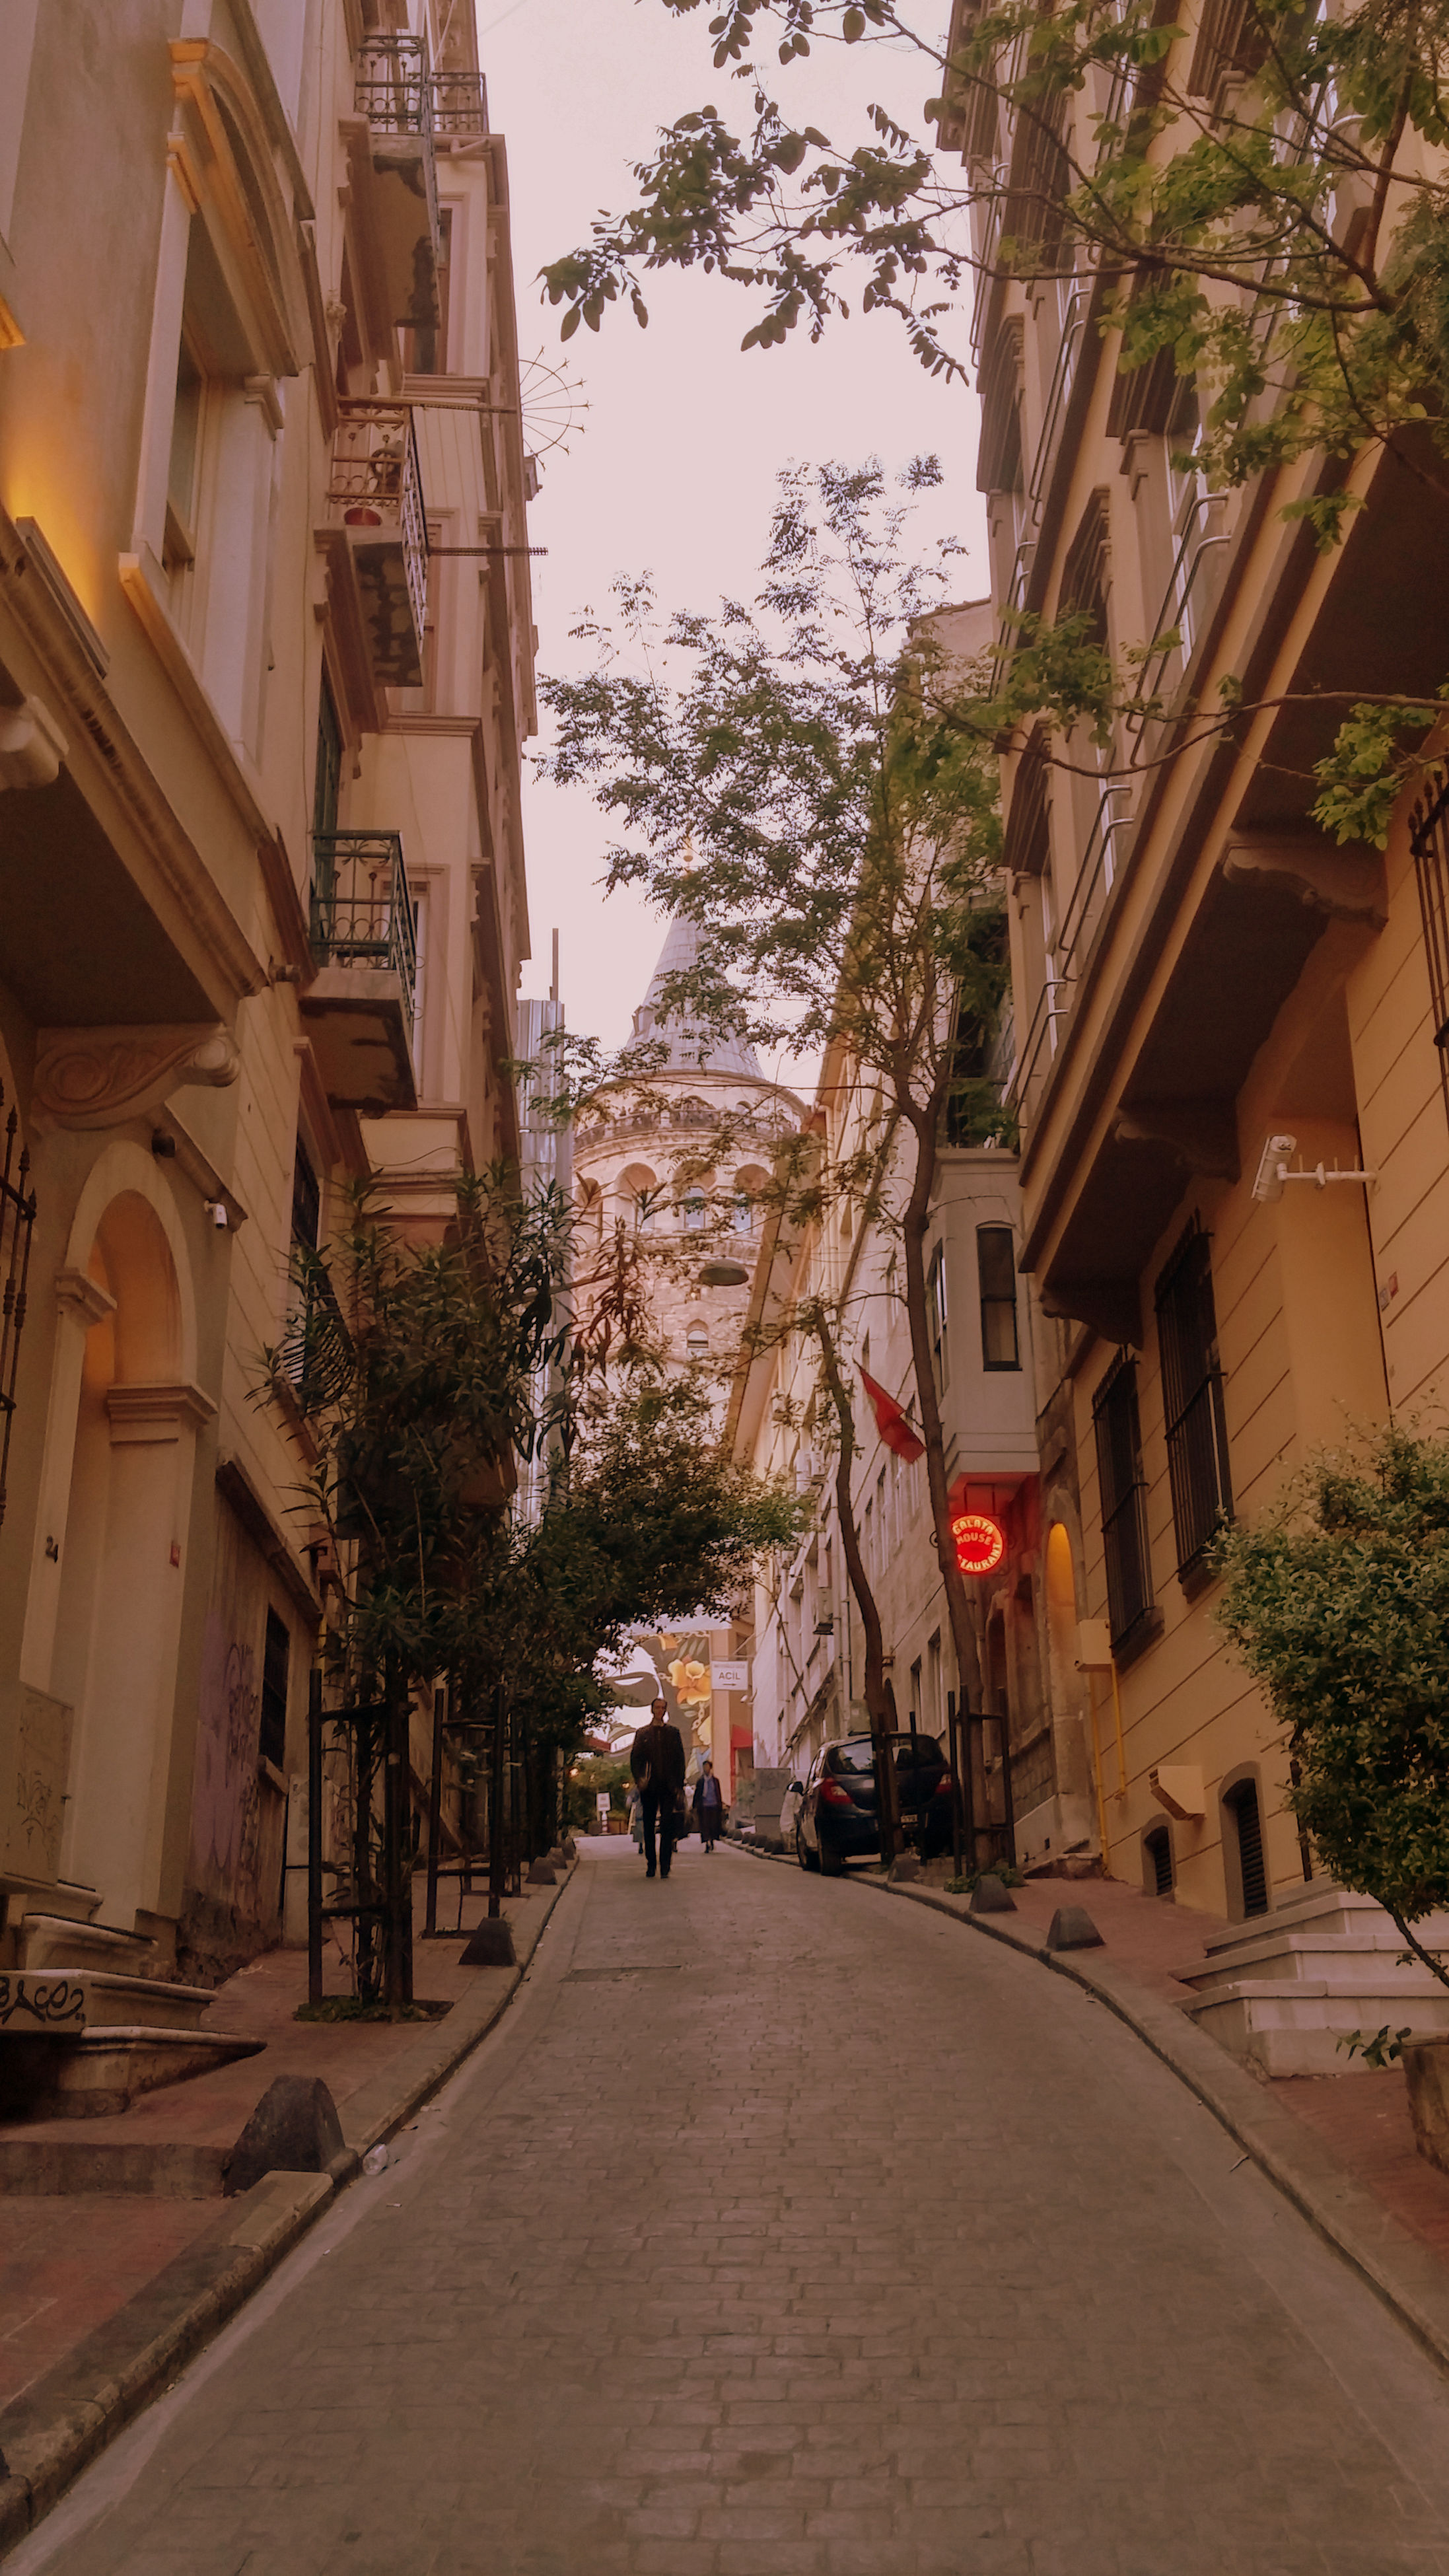 building exterior, architecture, built structure, the way forward, street, tree, diminishing perspective, residential structure, city, alley, residential building, house, road, vanishing point, incidental people, walking, building, day, transportation